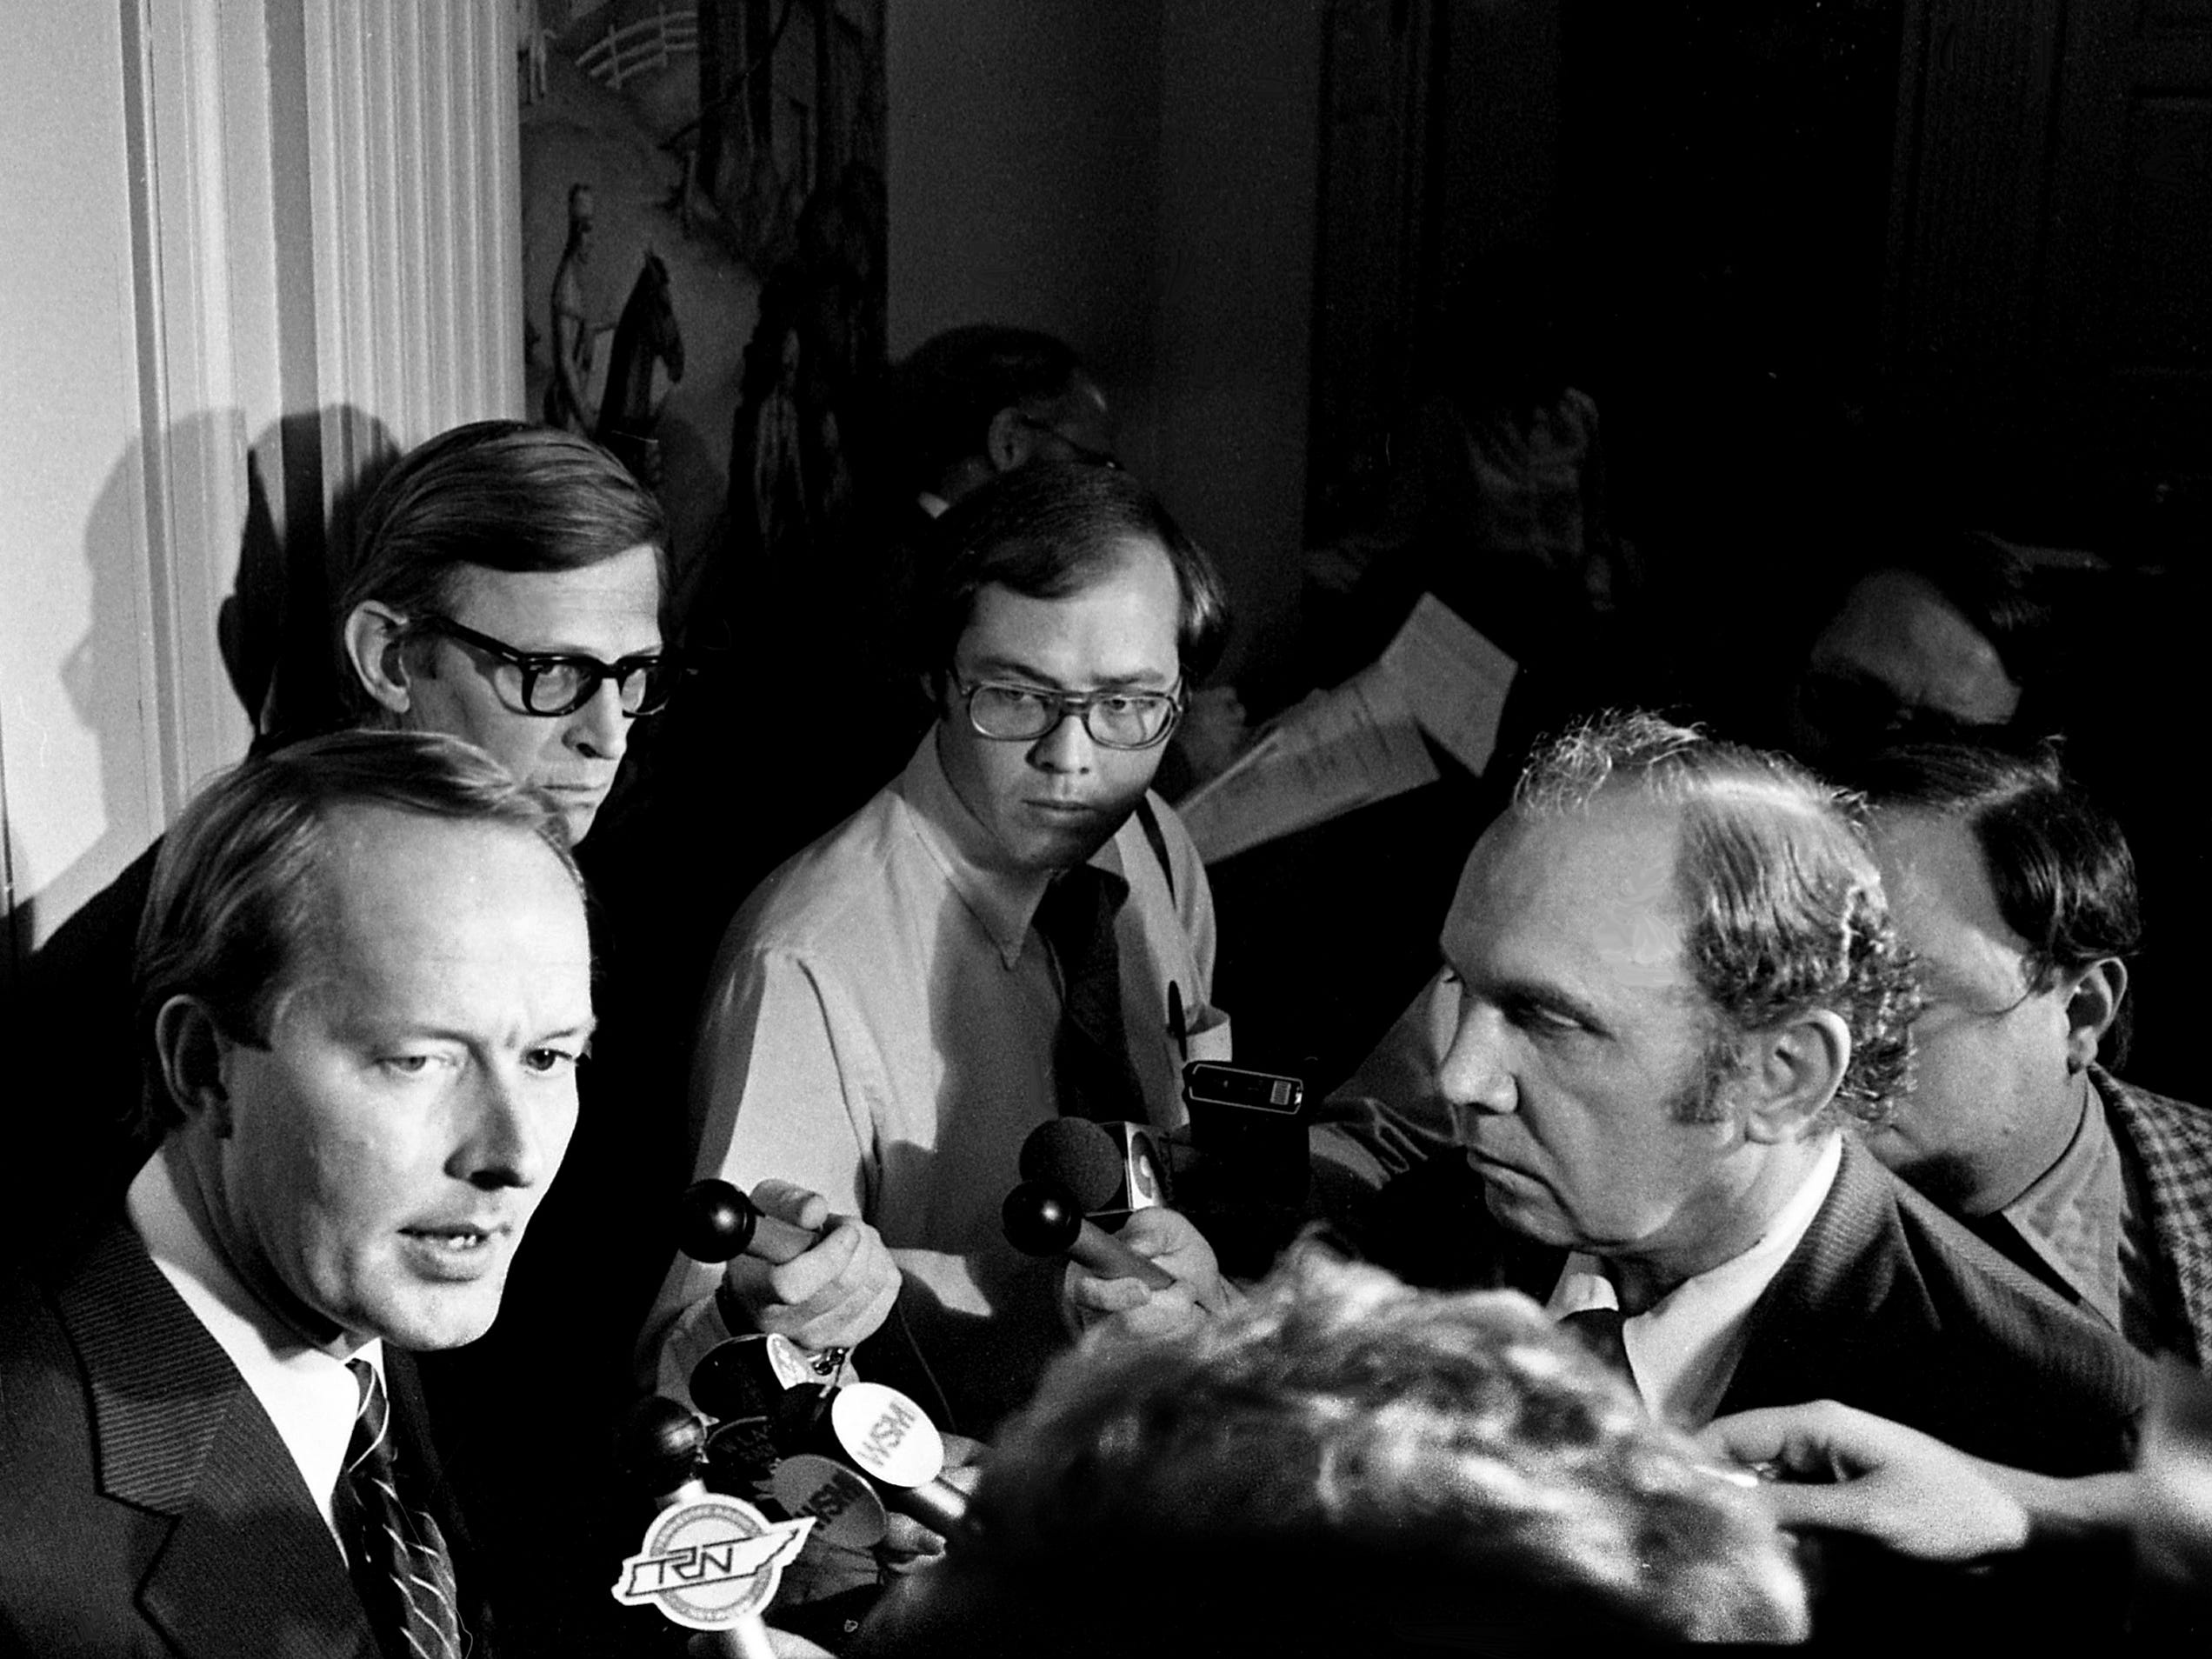 Gov. Lamar Alexander, left, announces his intention to accept the recommendation of State Attorney William Leech, behind the governor, to appeal the Court of Criminal Appeals decision affirming former Gov. Ray Blanton's granting of executive clemency to three state prison inmates during a press conference at the state Capitol on April 10, 1979.